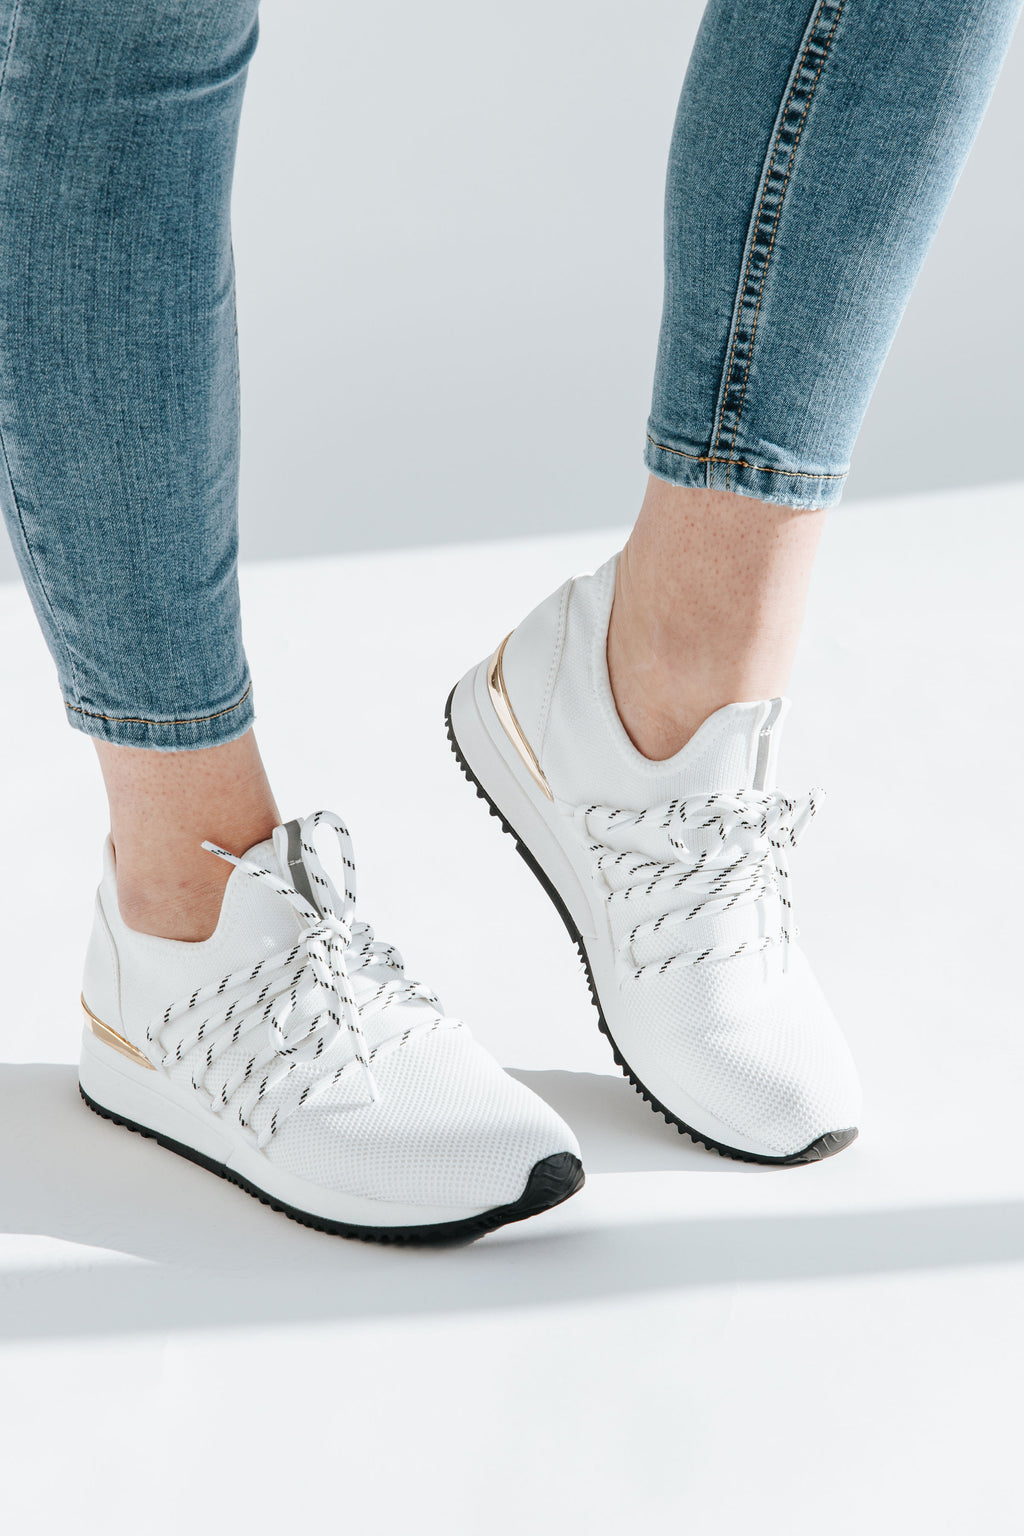 J-Slides: Mara Knit Sneaker in White, studio shoot; side view